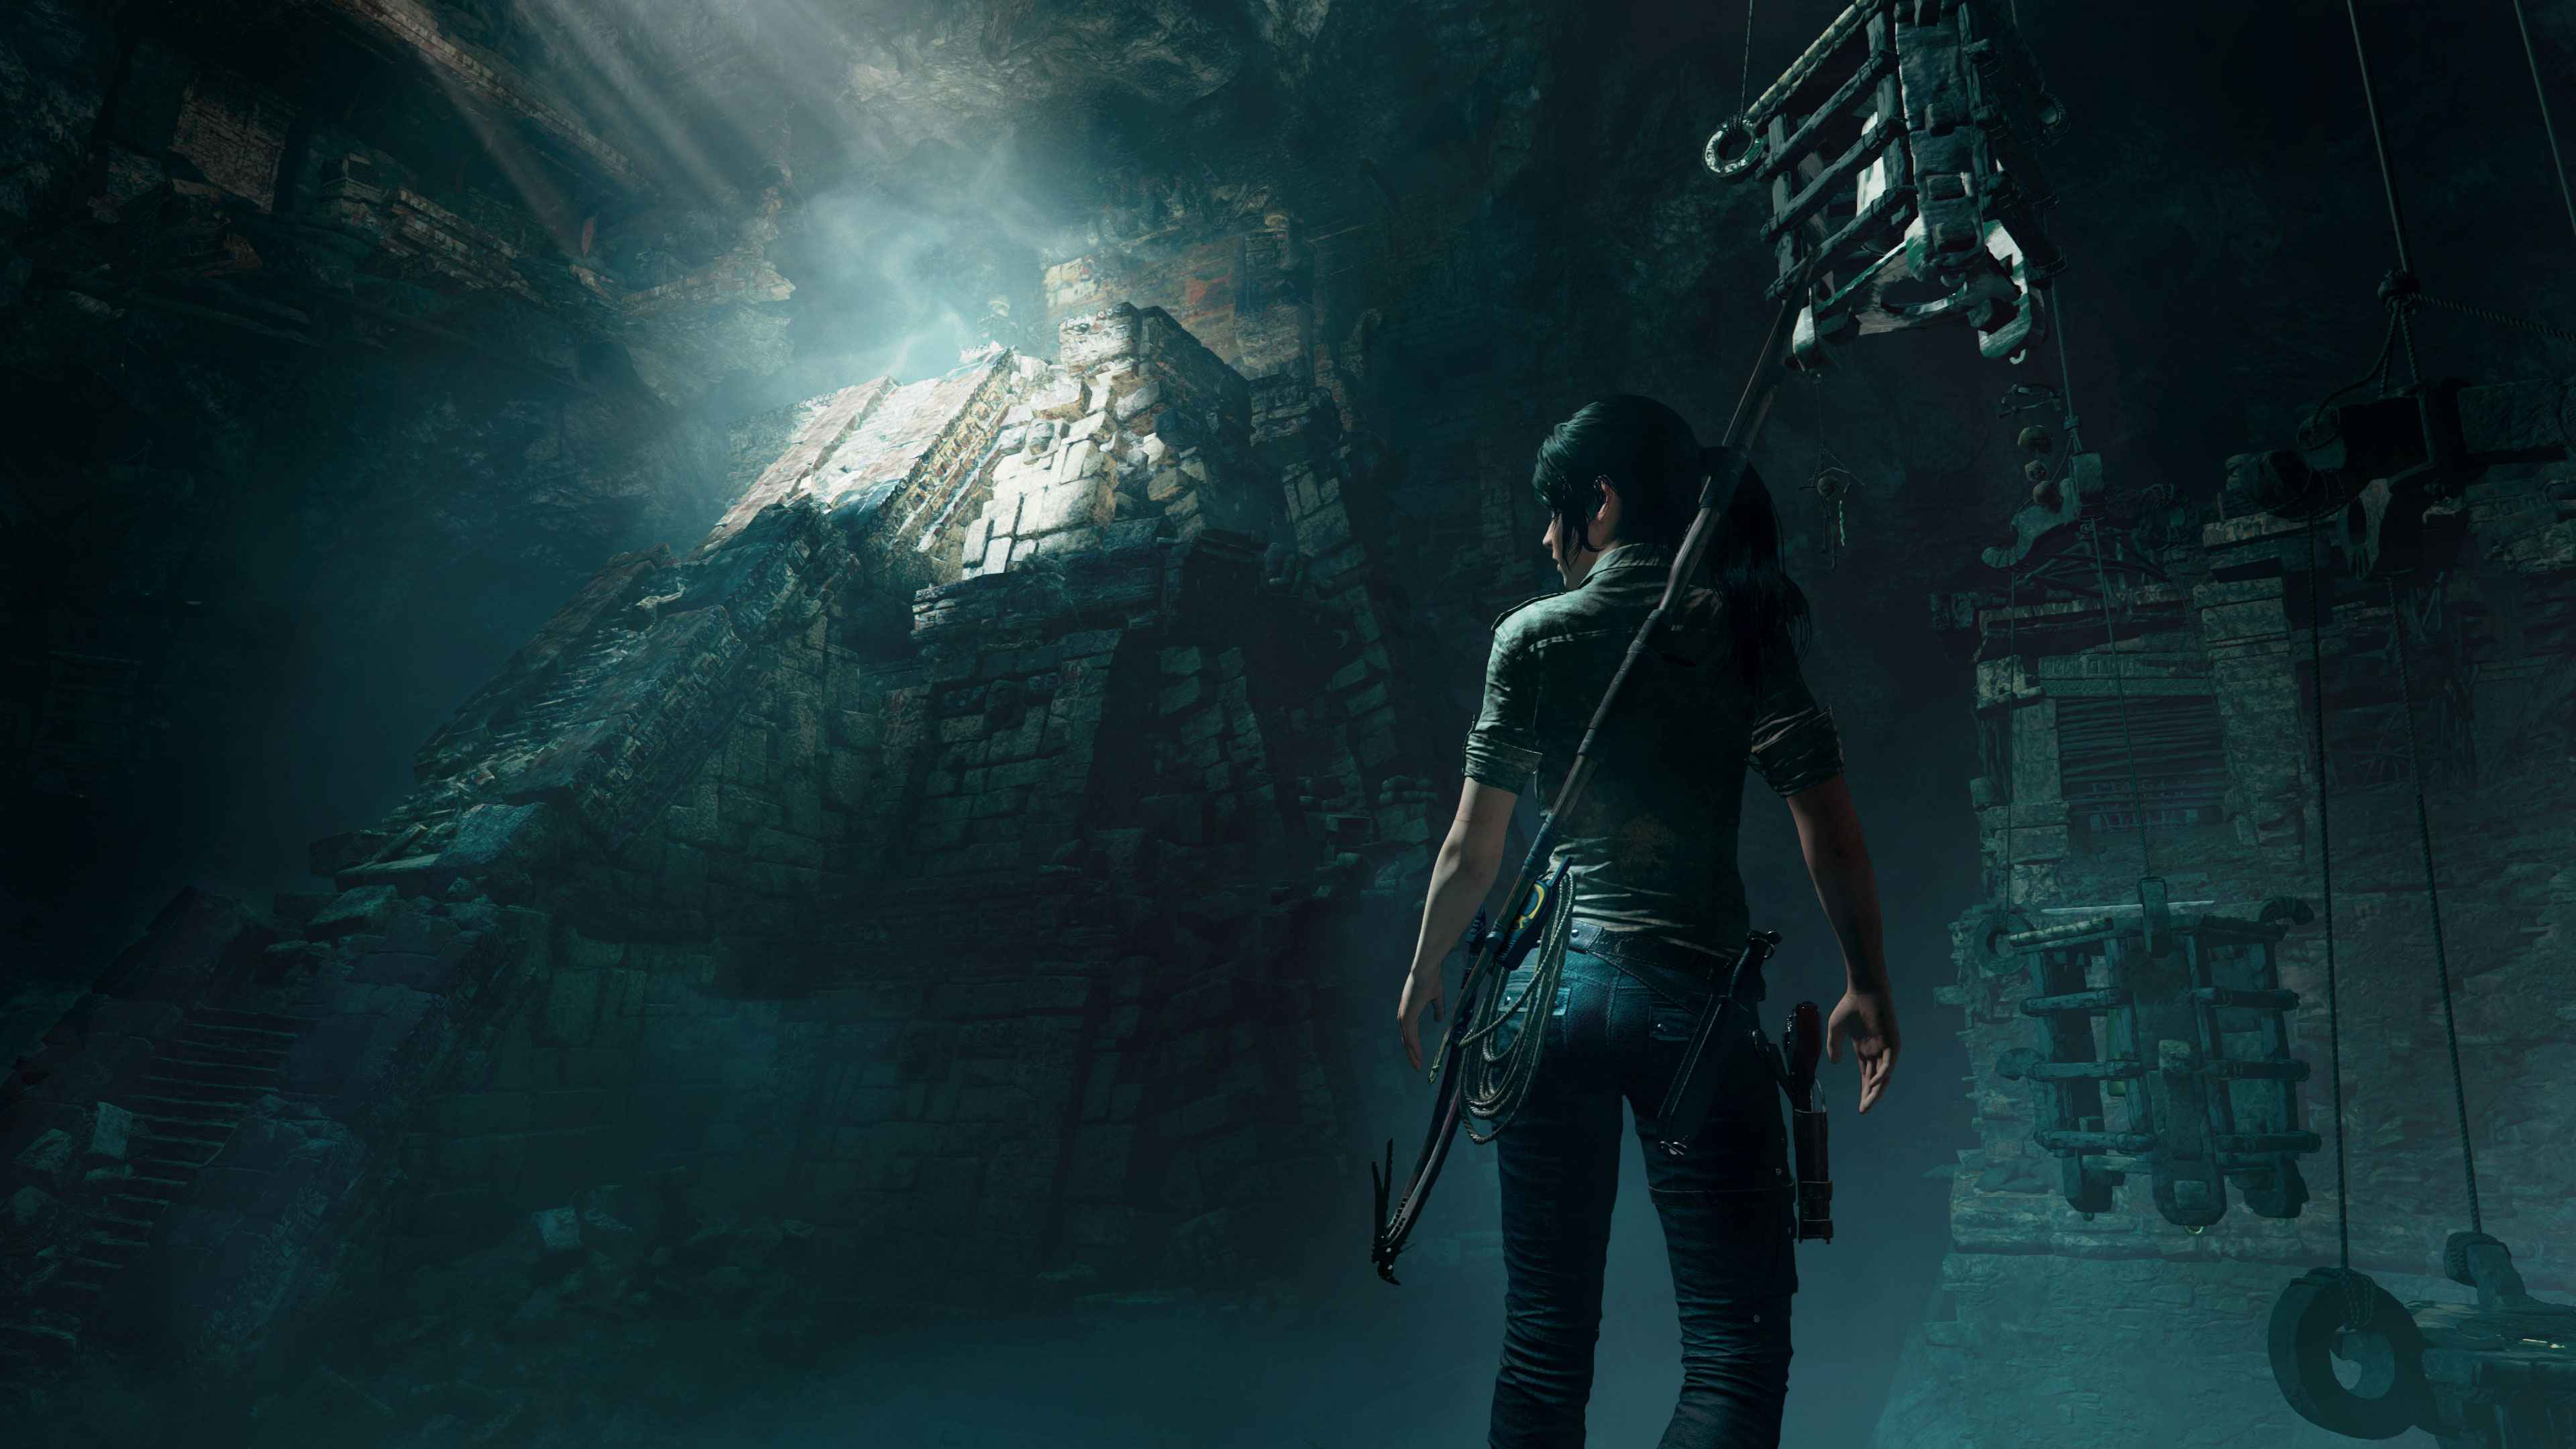 What's Happened to Lara in Shadow of the Tomb Raider?